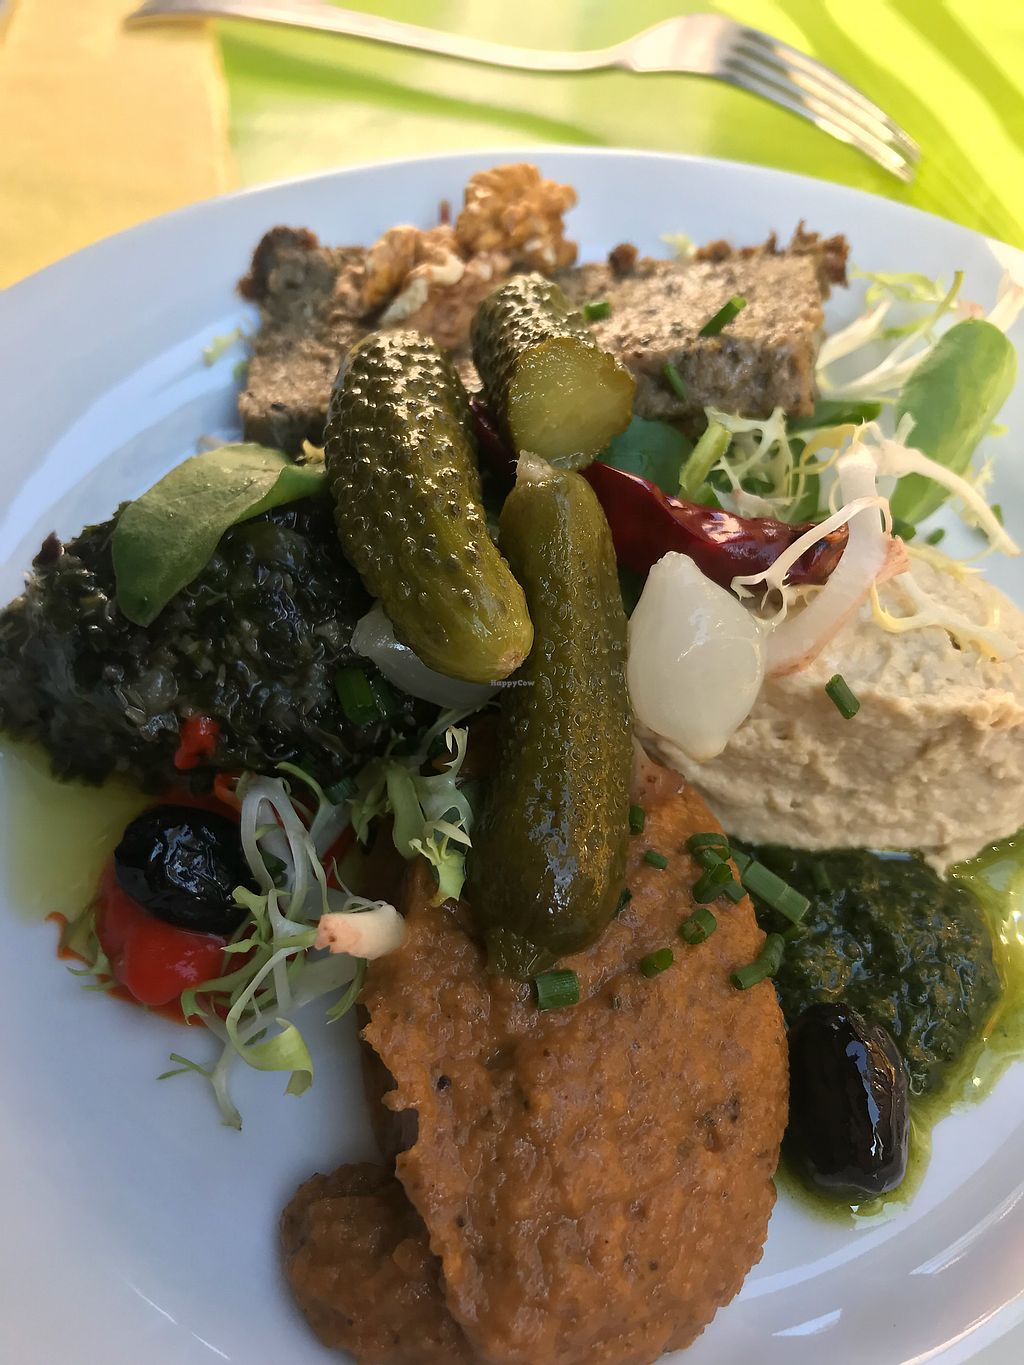 """Photo of Le Potager du Marais  by <a href=""""/members/profile/alicej18"""">alicej18</a> <br/>Starter- sampler <br/> May 25, 2018  - <a href='/contact/abuse/image/4106/405057'>Report</a>"""